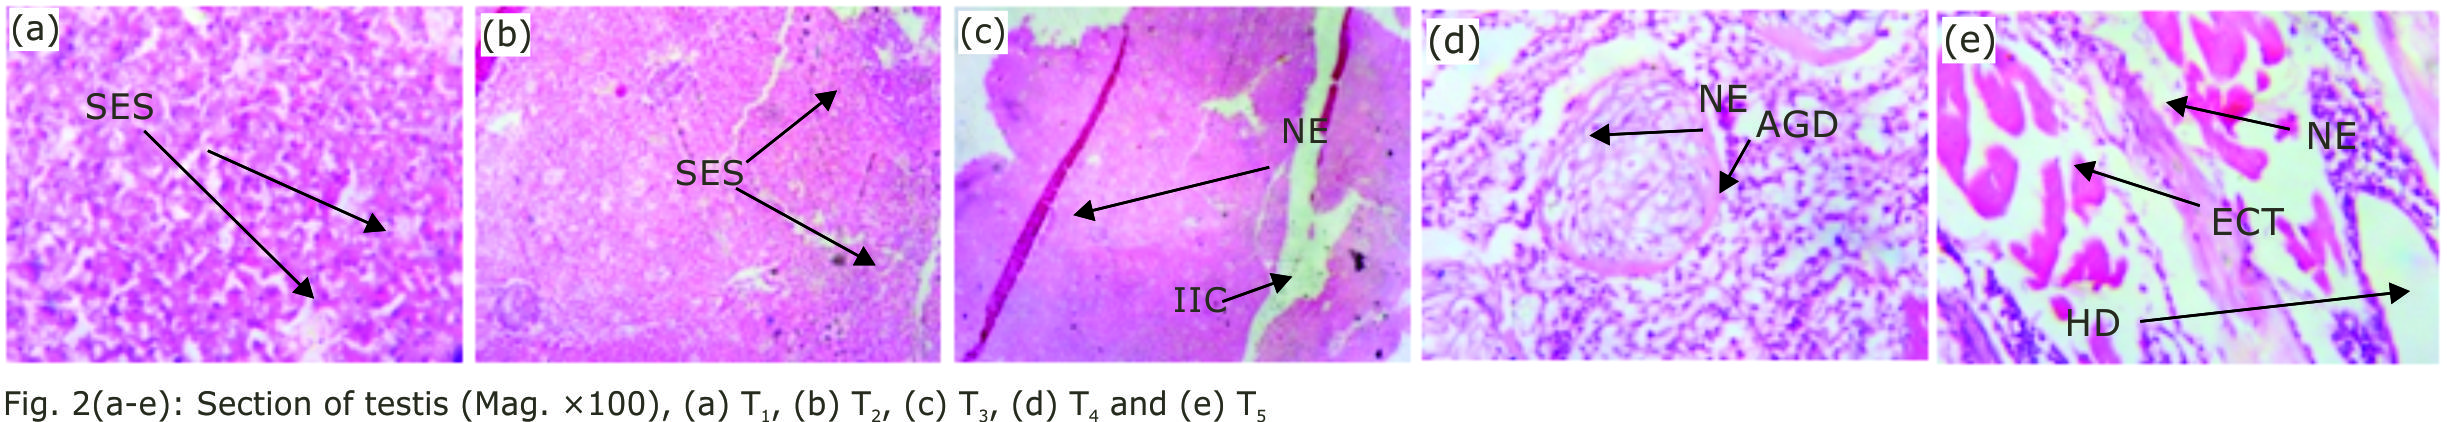 Image for - Effect of Martynia annua (Devil's Claw) Leaf Meal on the Reproductive and Growth Performance of Oreochromis niloticus (Nile tilapia)